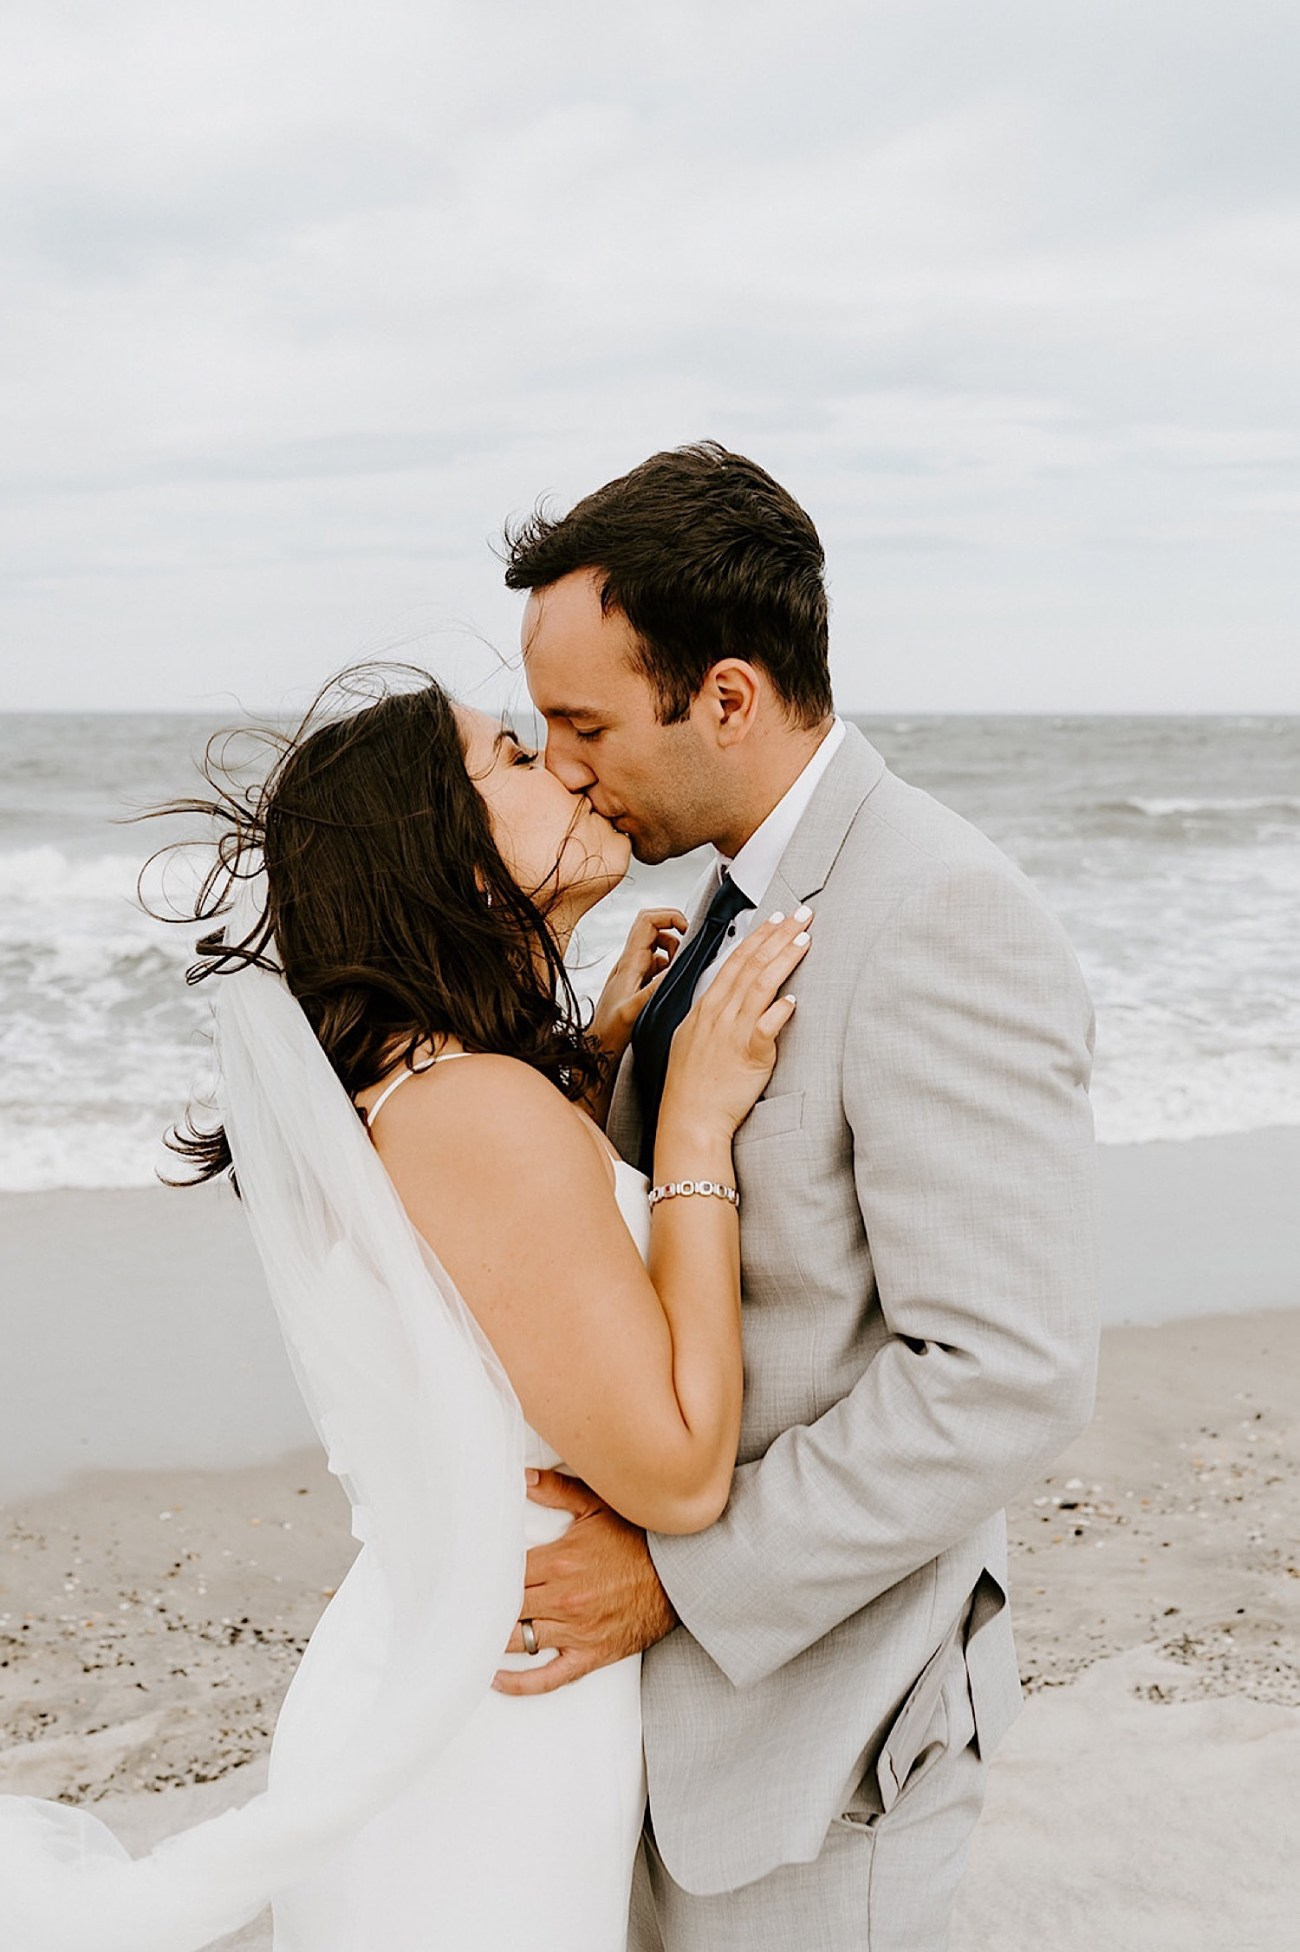 090 Sea Bright Wedding Beach Wedding Photos New Jersey Shore Wedding Nj Wedding Photographer Beach Elopement Photos